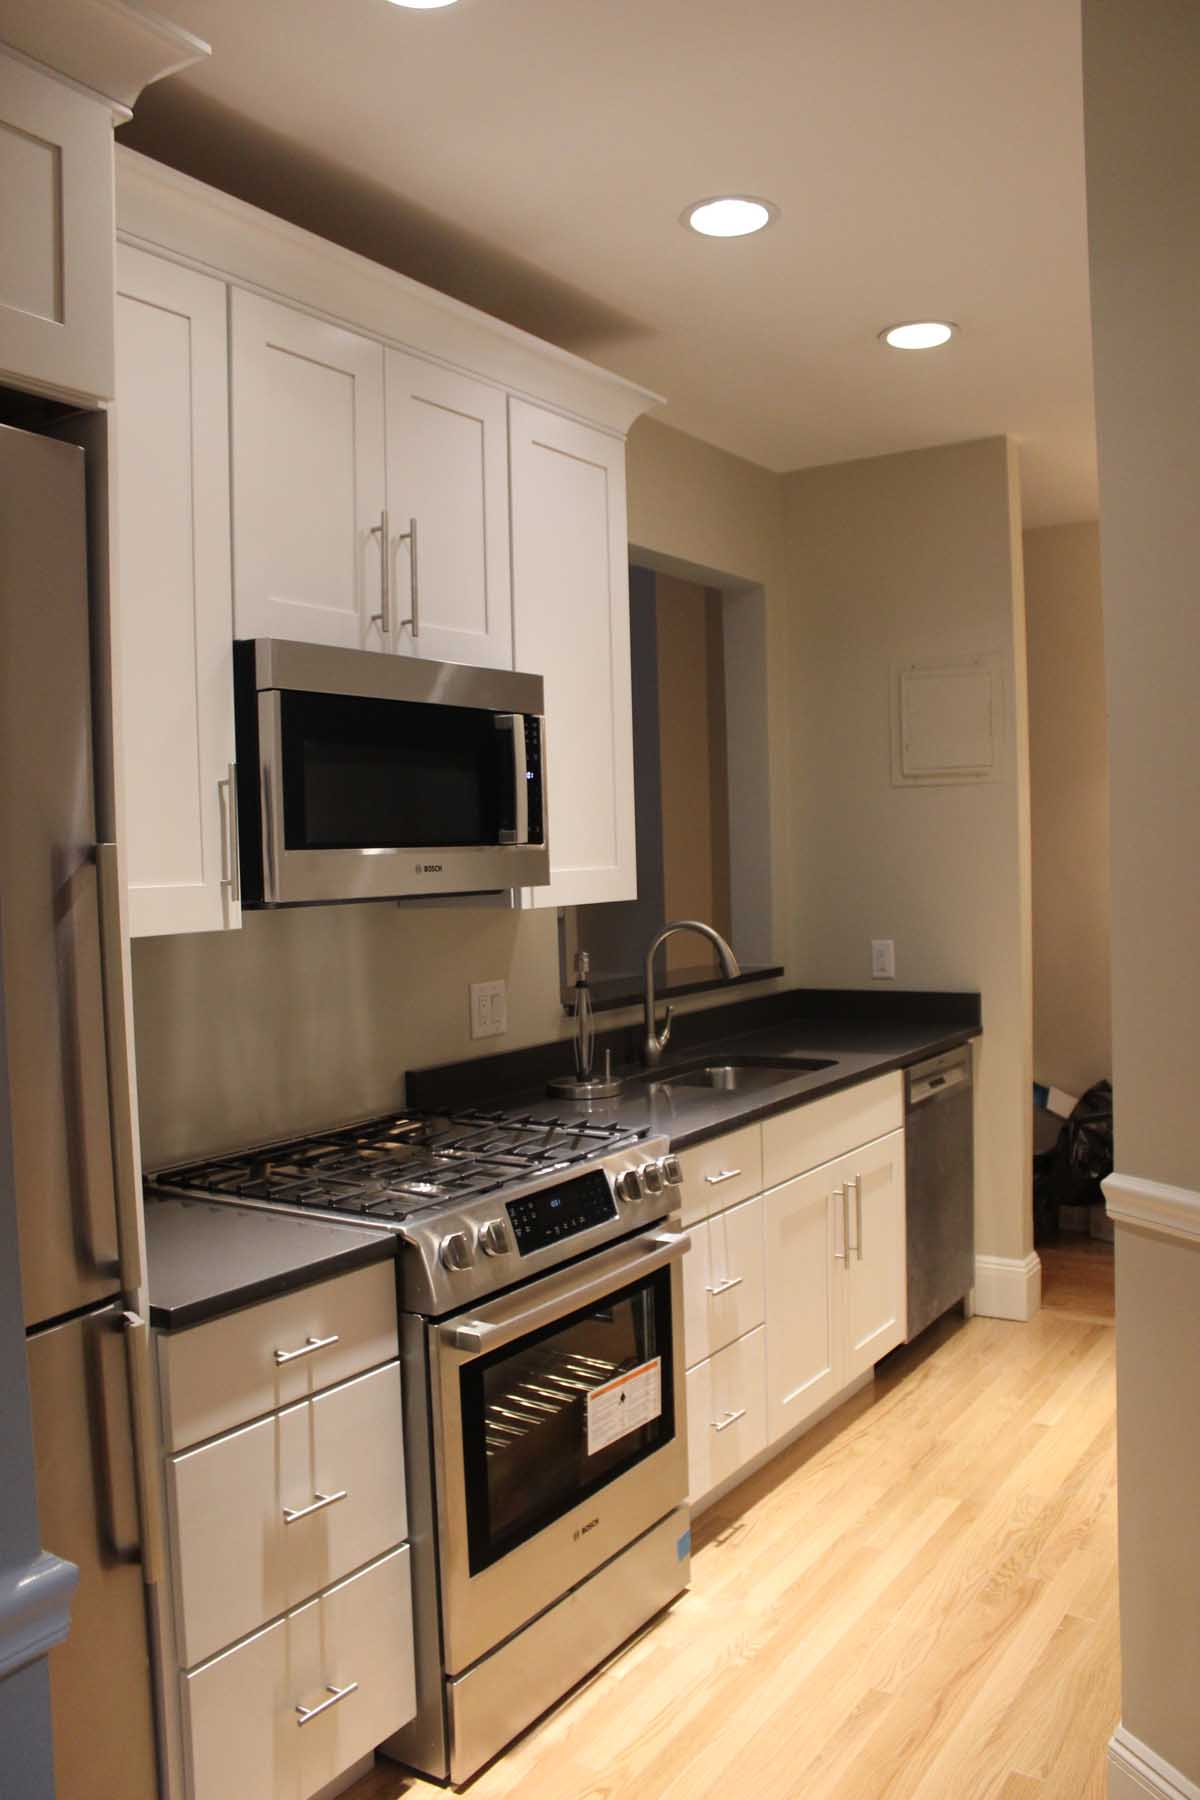 After Arlington kitchen remodel - Bay State Refinishing & Remodeling